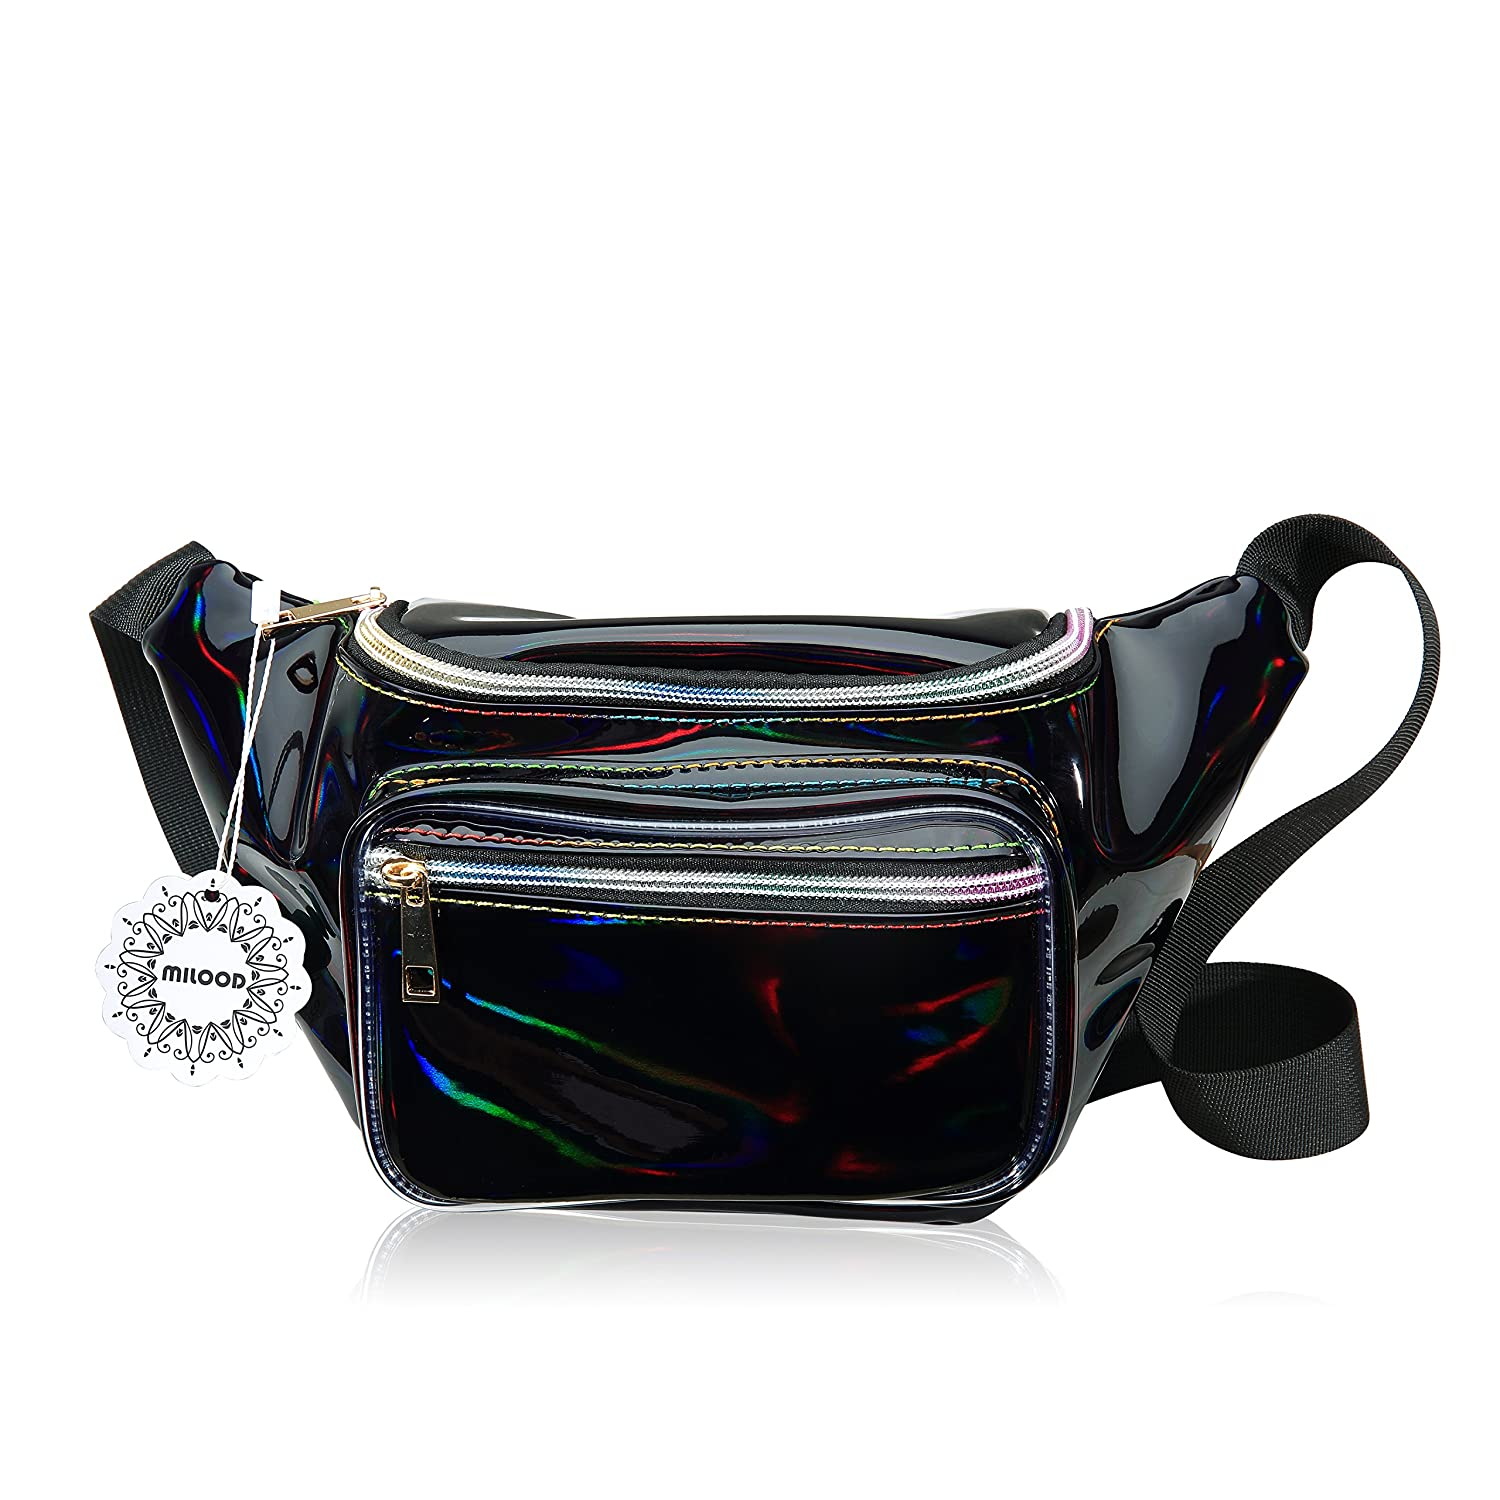 8d6d85e6ae58 Mua sản phẩm Water Resistant Shiny Neon Fanny Bag for Women Rave ...